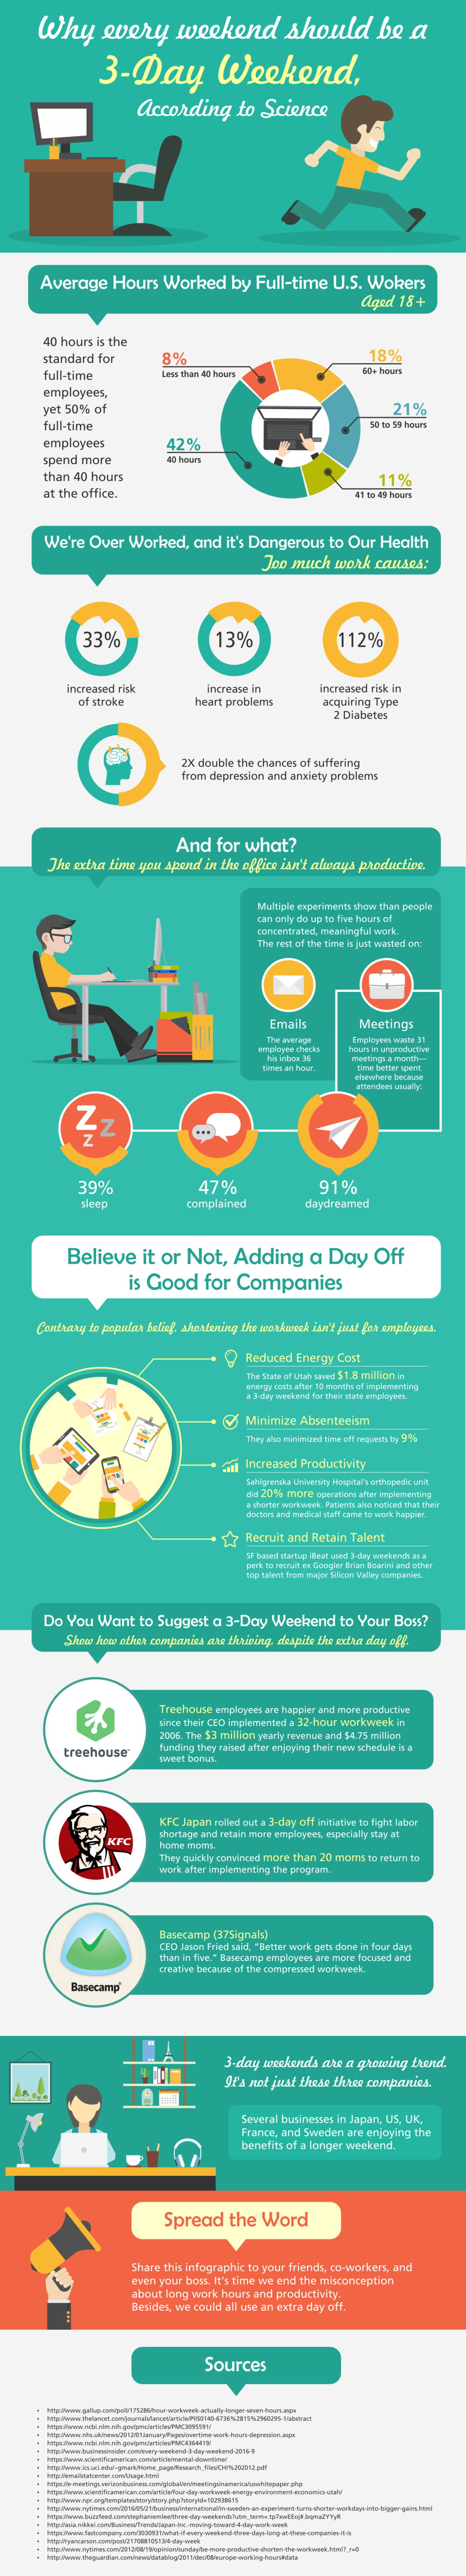 Investment Zen - 4 Day Work Week Infographic